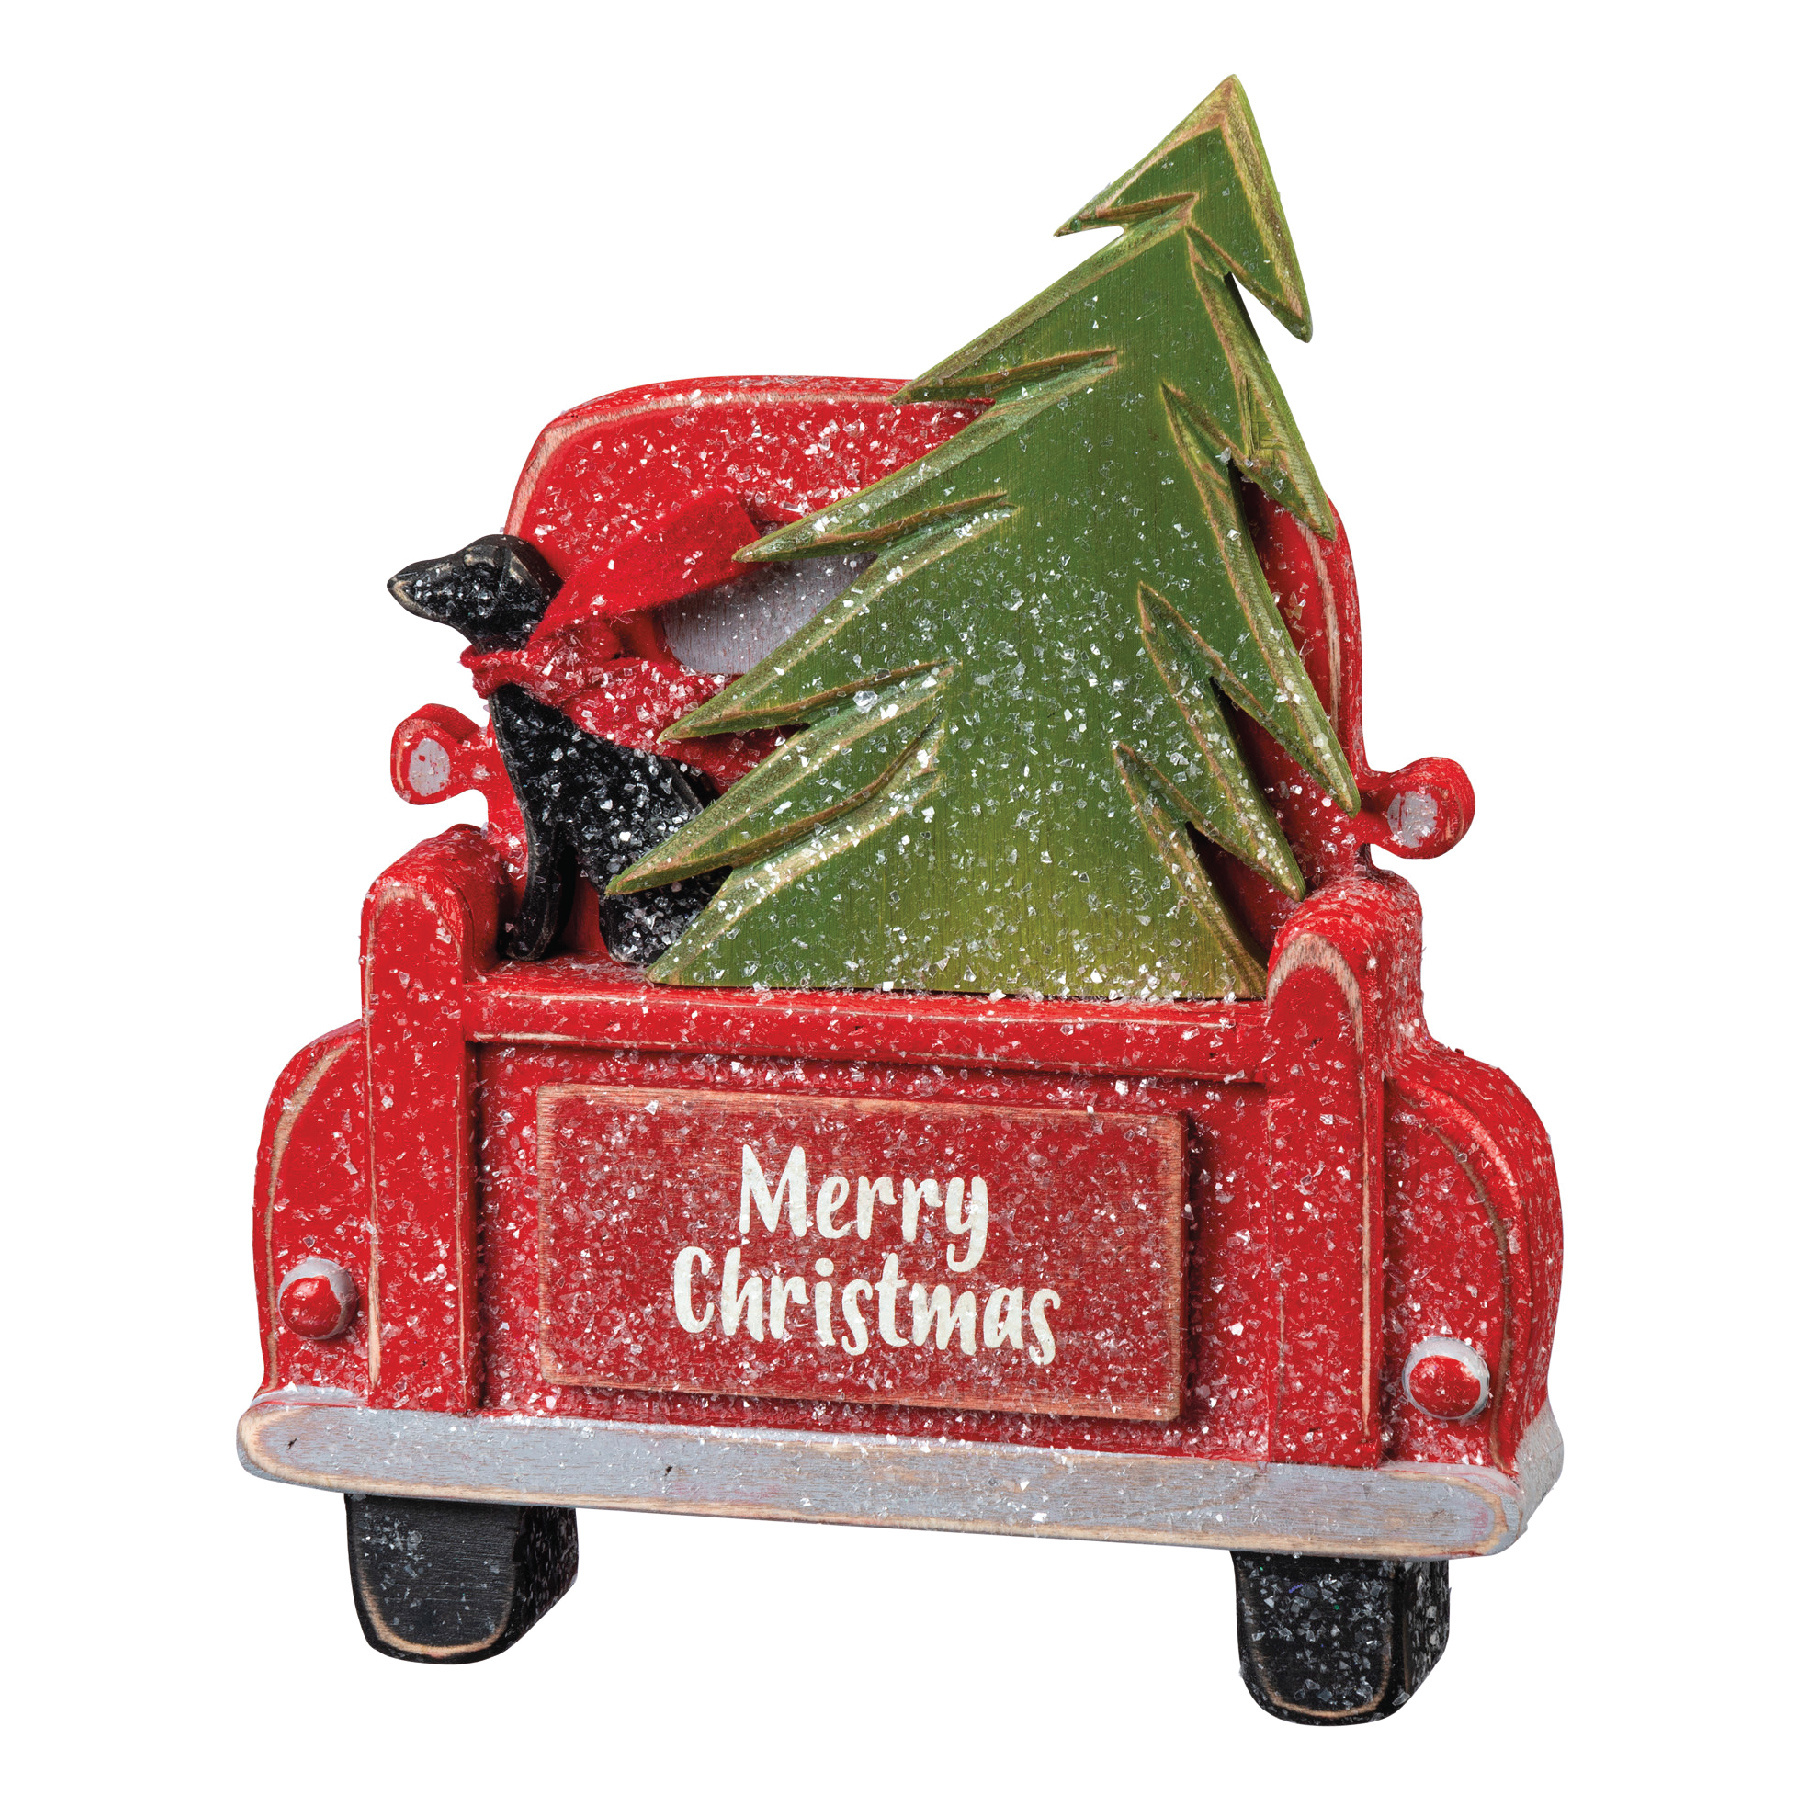 Sign-Merry Christmas Truck